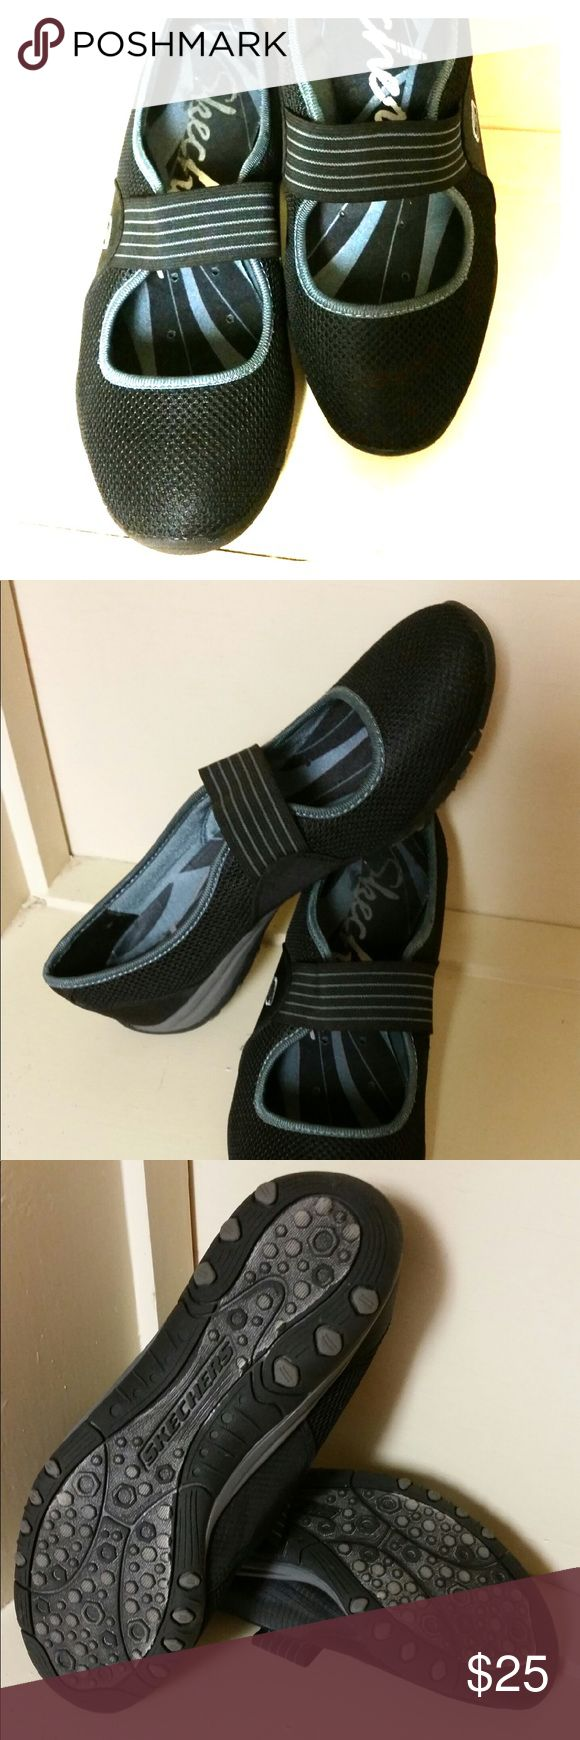 Skechers MaryJanes SKECHERS Black Mesh/Ripstop Fabric Elastic Strap Mary Janes Size: 8.                                                       Nice condition. No major marks or damage. Skechers Shoes Flats & Loafers